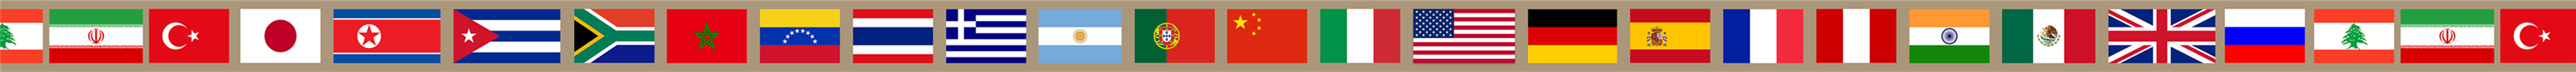 decorative country flags